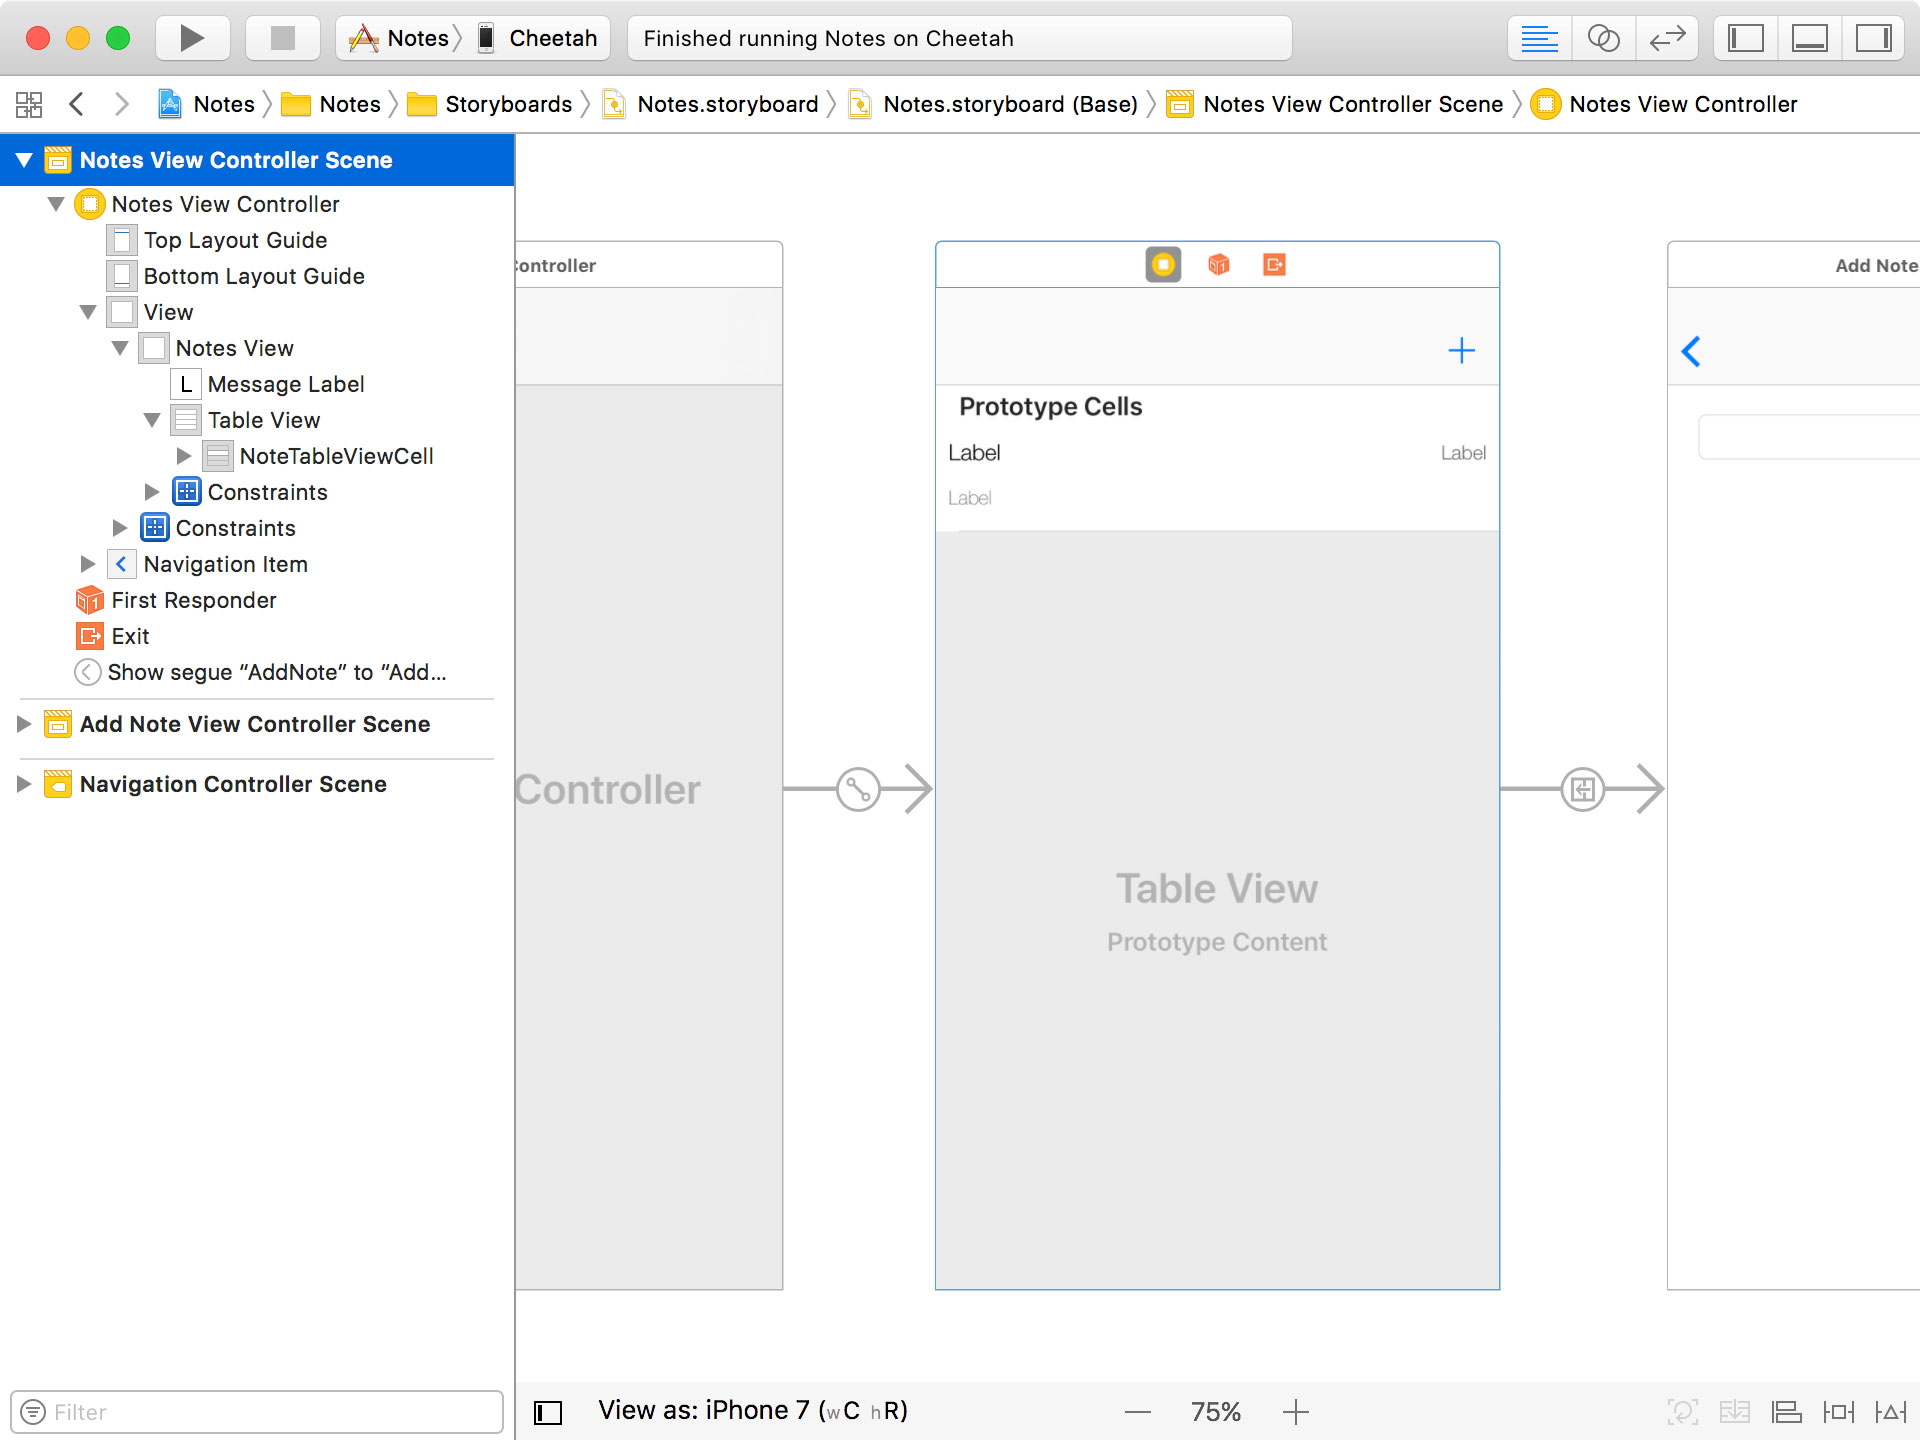 Notes View Controller